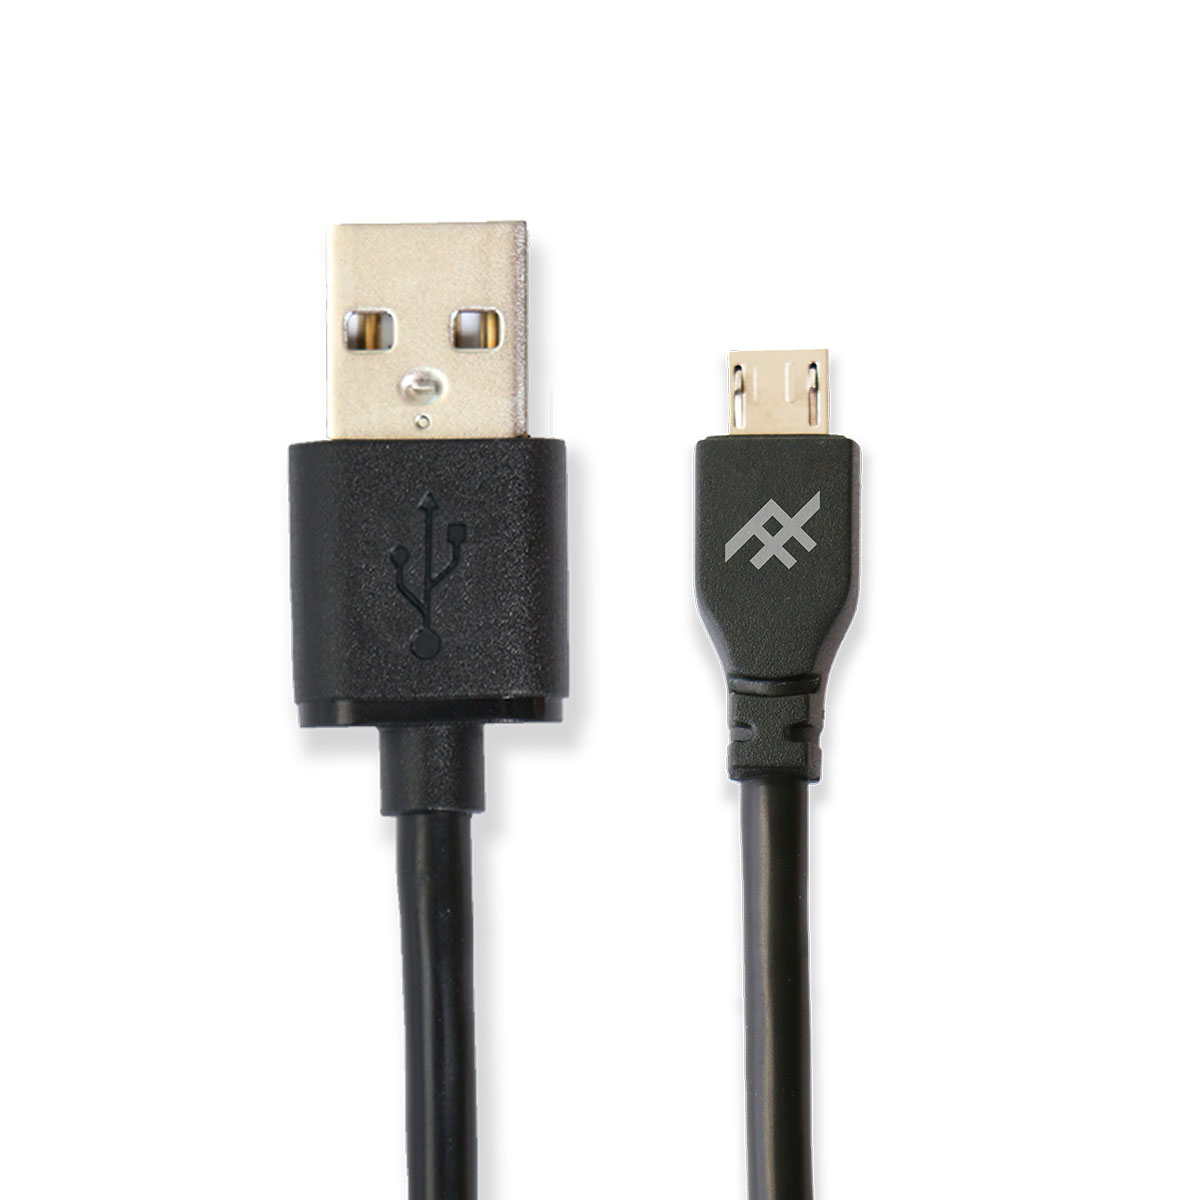 iFrogz UniqueSync Charge/Sync microUSB Cable 1m Black